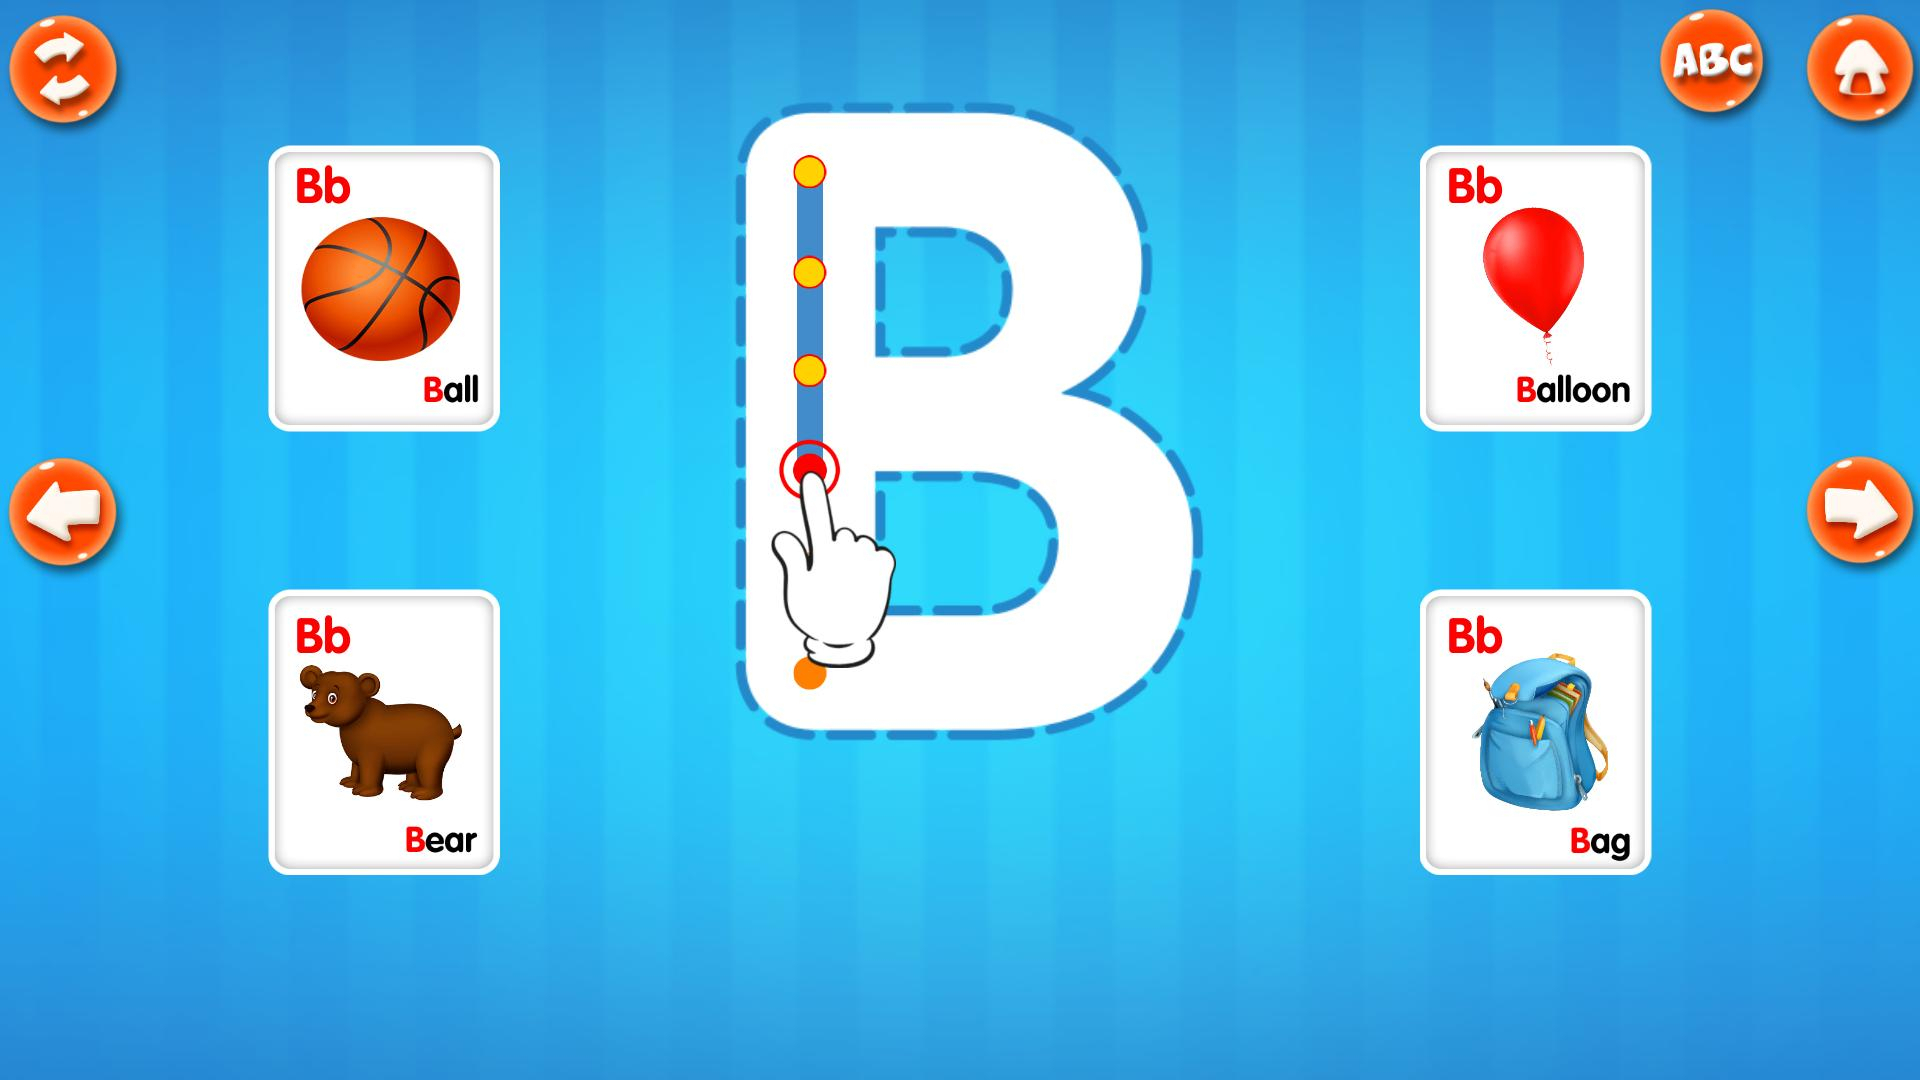 Abc Alphabet Tracing For Android - Apk Download inside Alphabet Tracing App